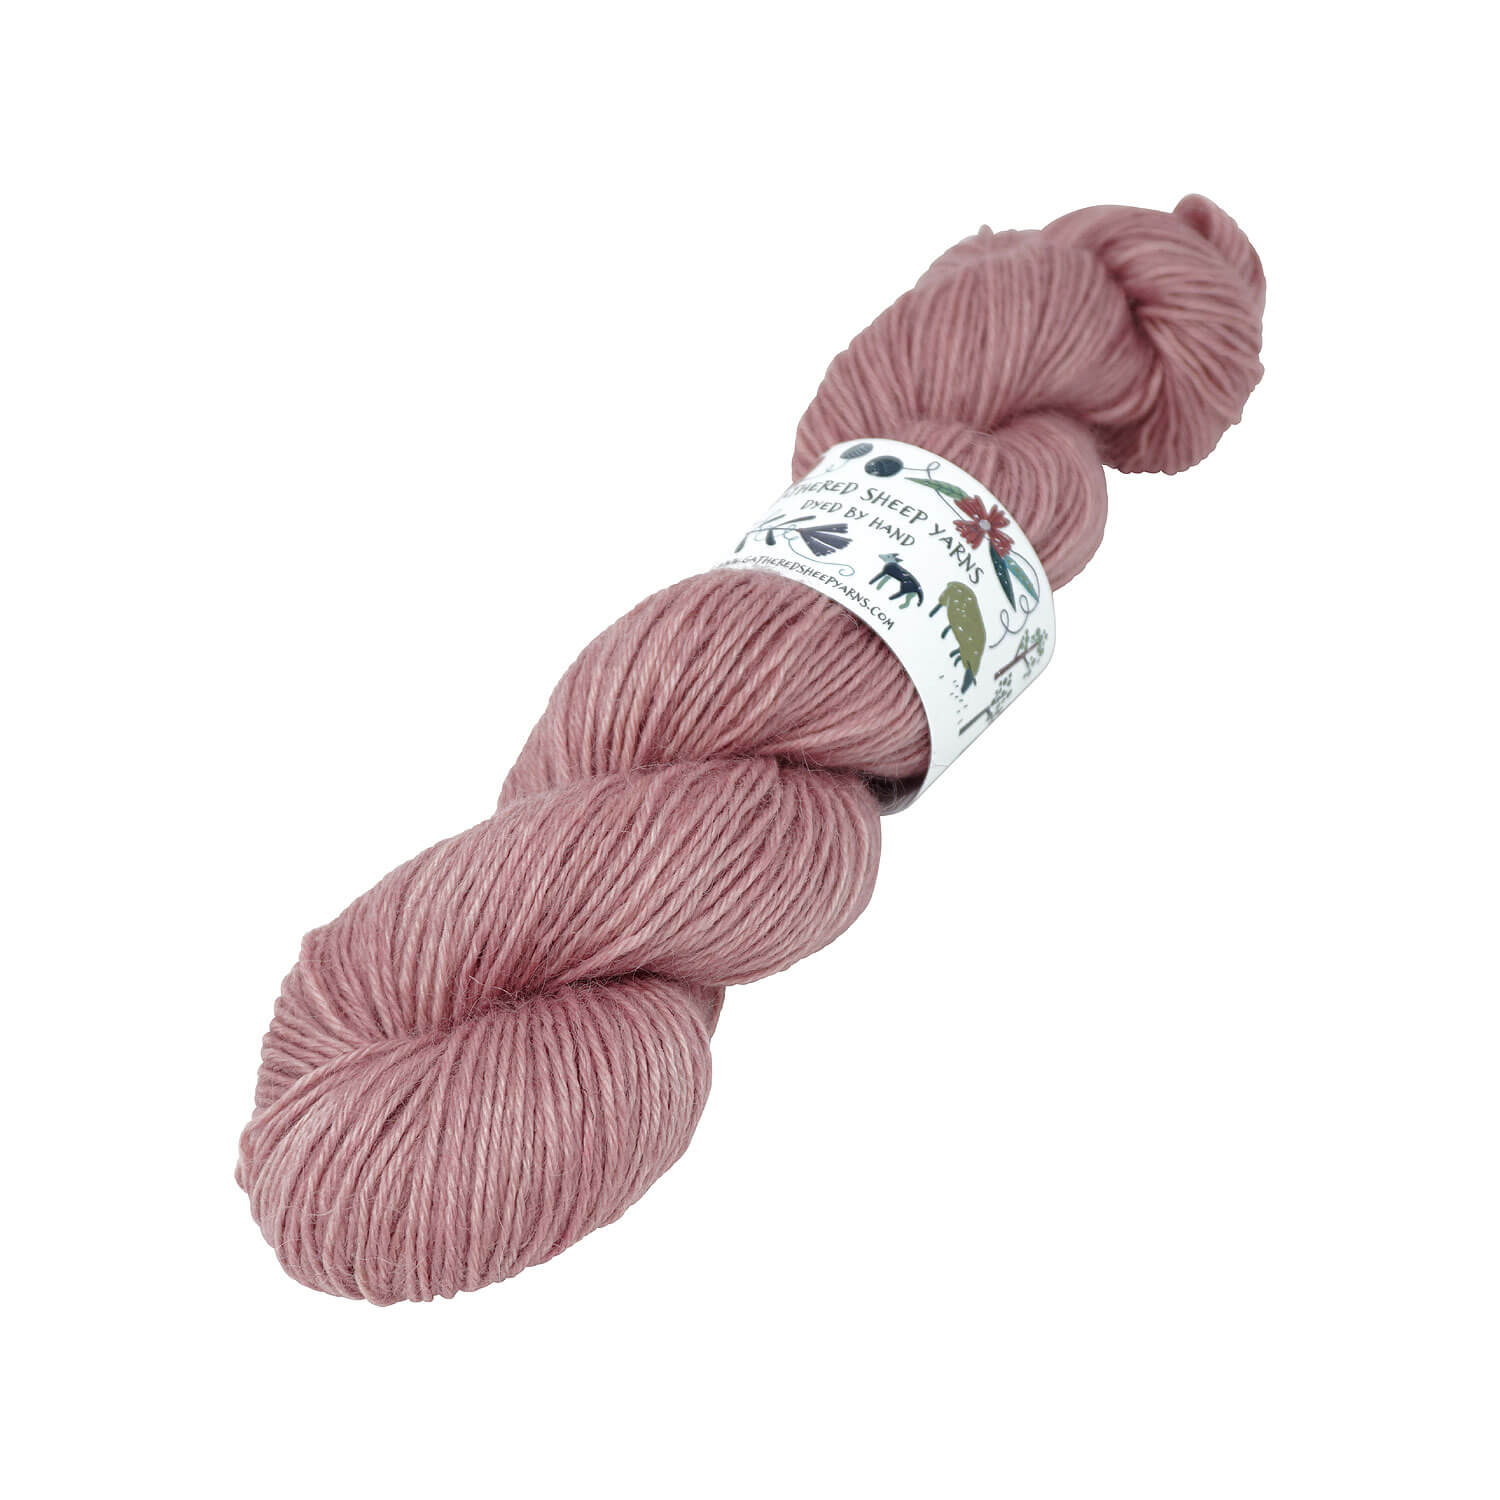 Gathered Sheep Yarns - Wensleydale & Teeswater Light DK - 100g - Ballet Slipper